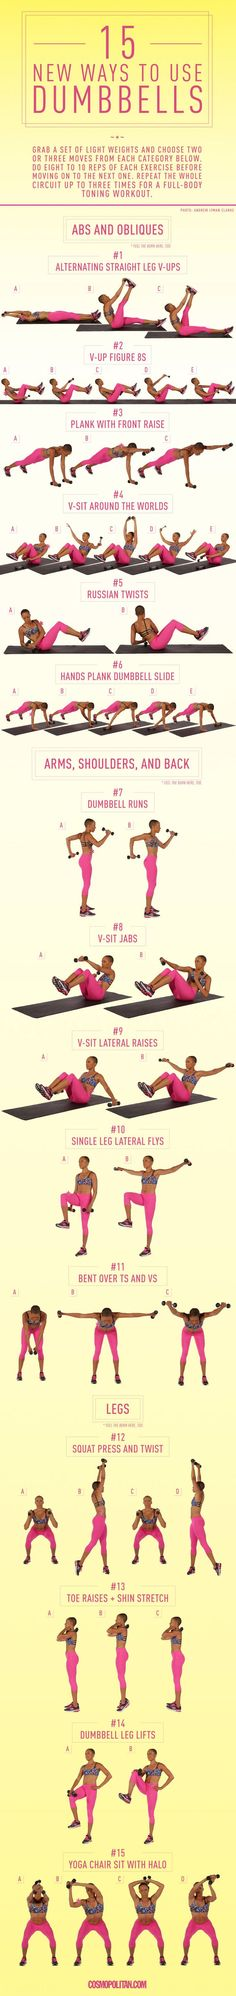 15 New Ways to Use Dumbbells- It is certified fitness instructor and sports performance coach, to build a DIY dumbbell workout that targets the body parts you want to tone.